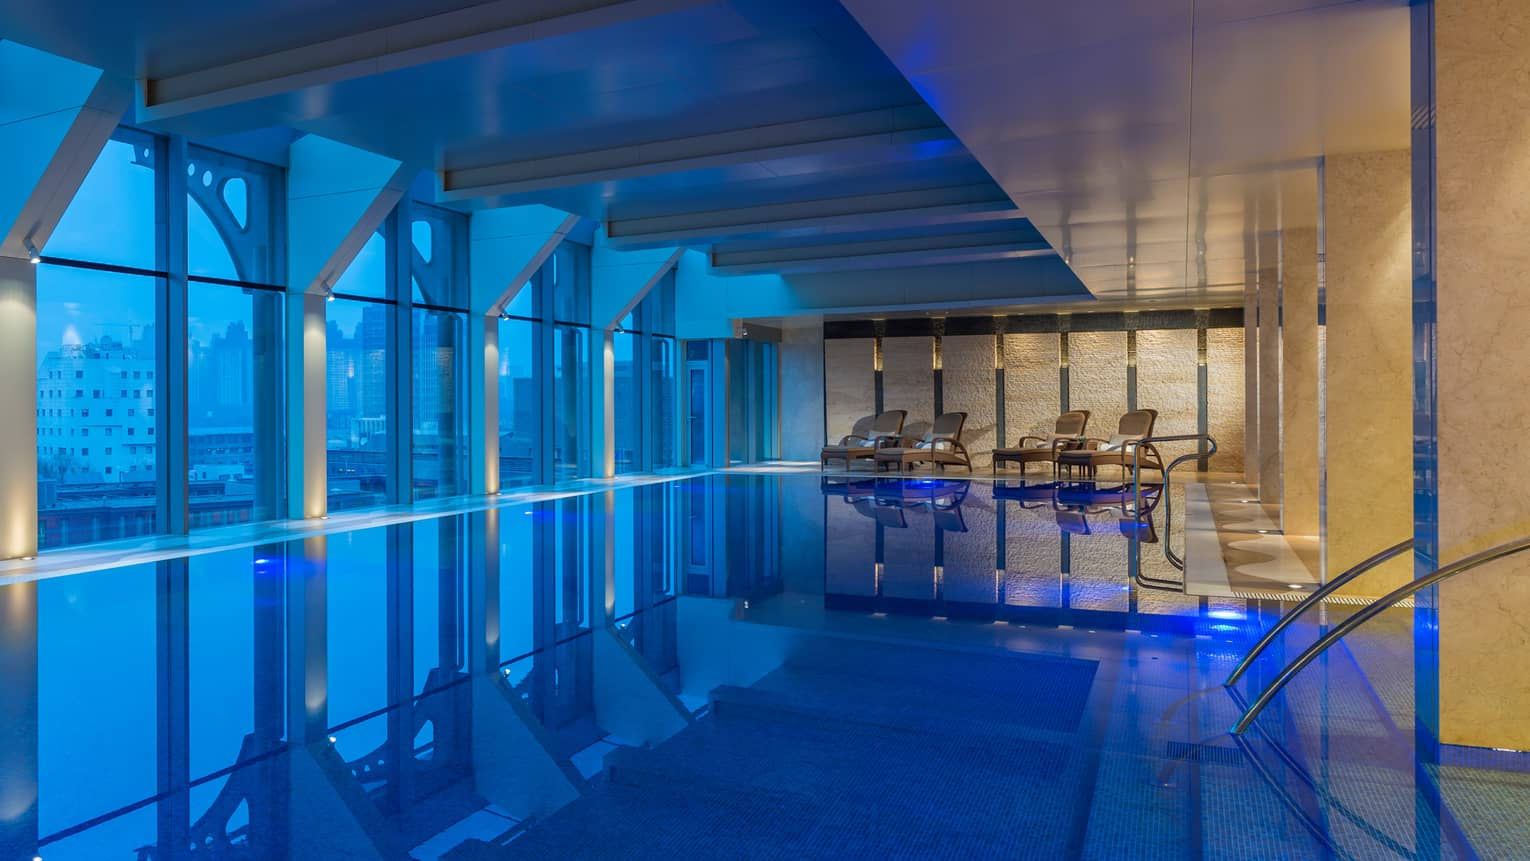 Indoor swimming pool along window at dusk